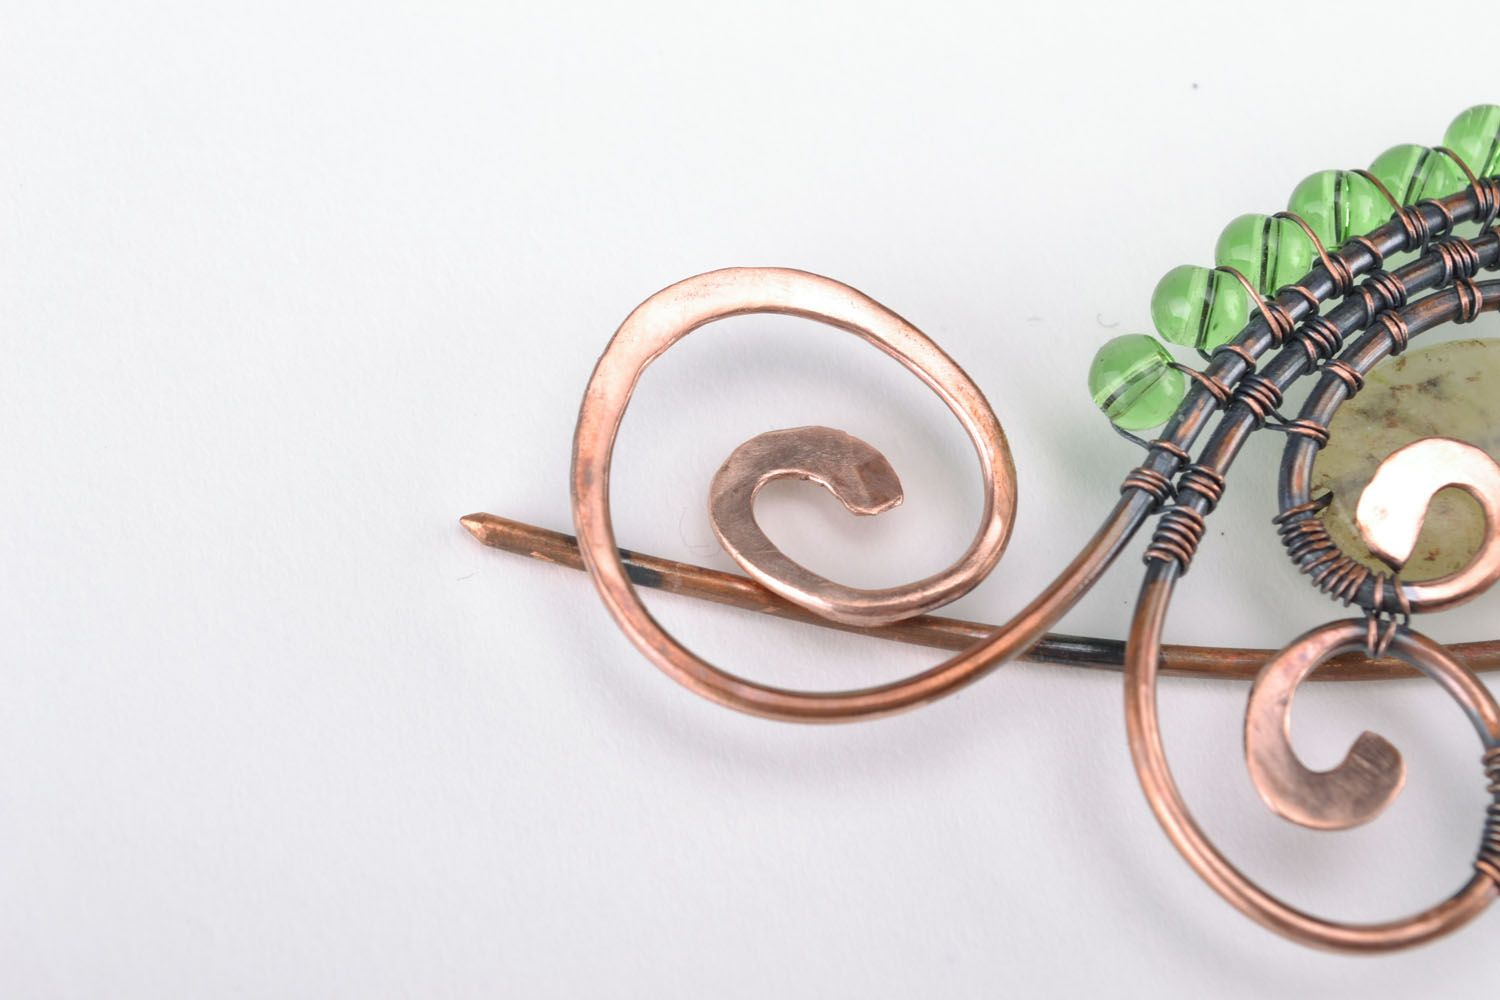 Copper brooch photo 4